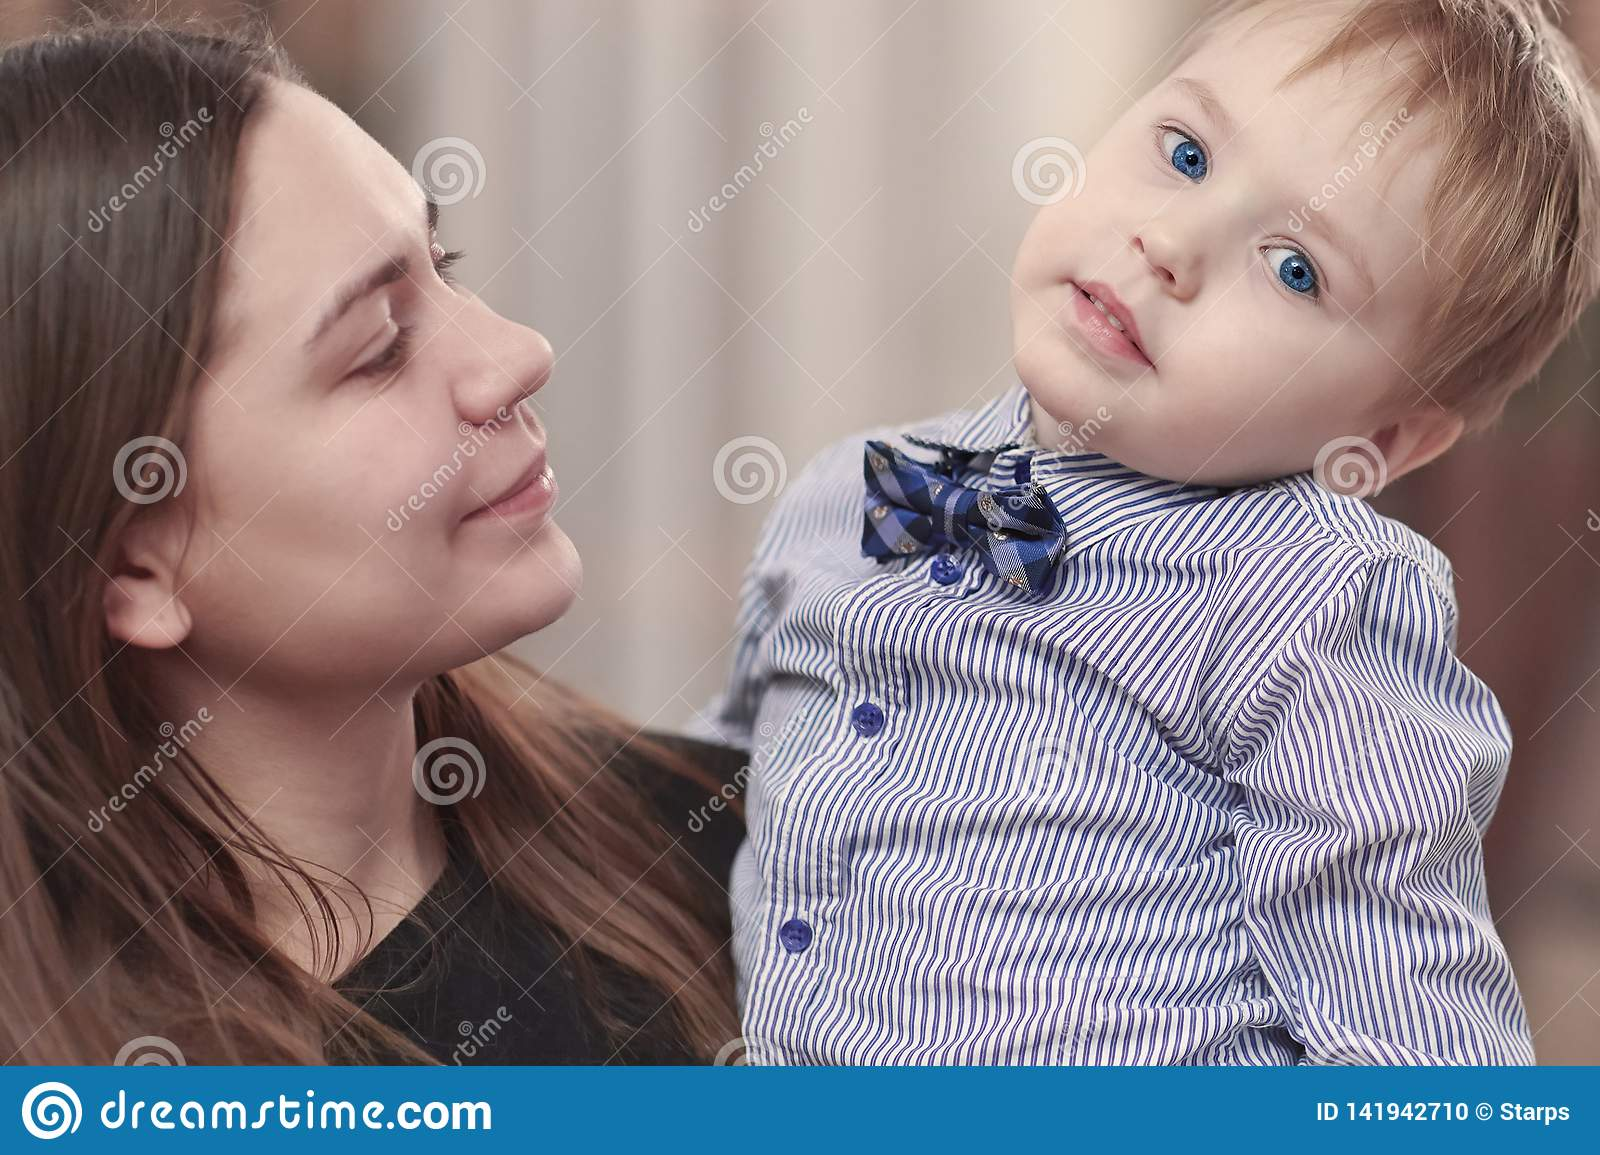 Beautiful young mother with a baby boy in her arms at home. Happy family and motherhood concept.